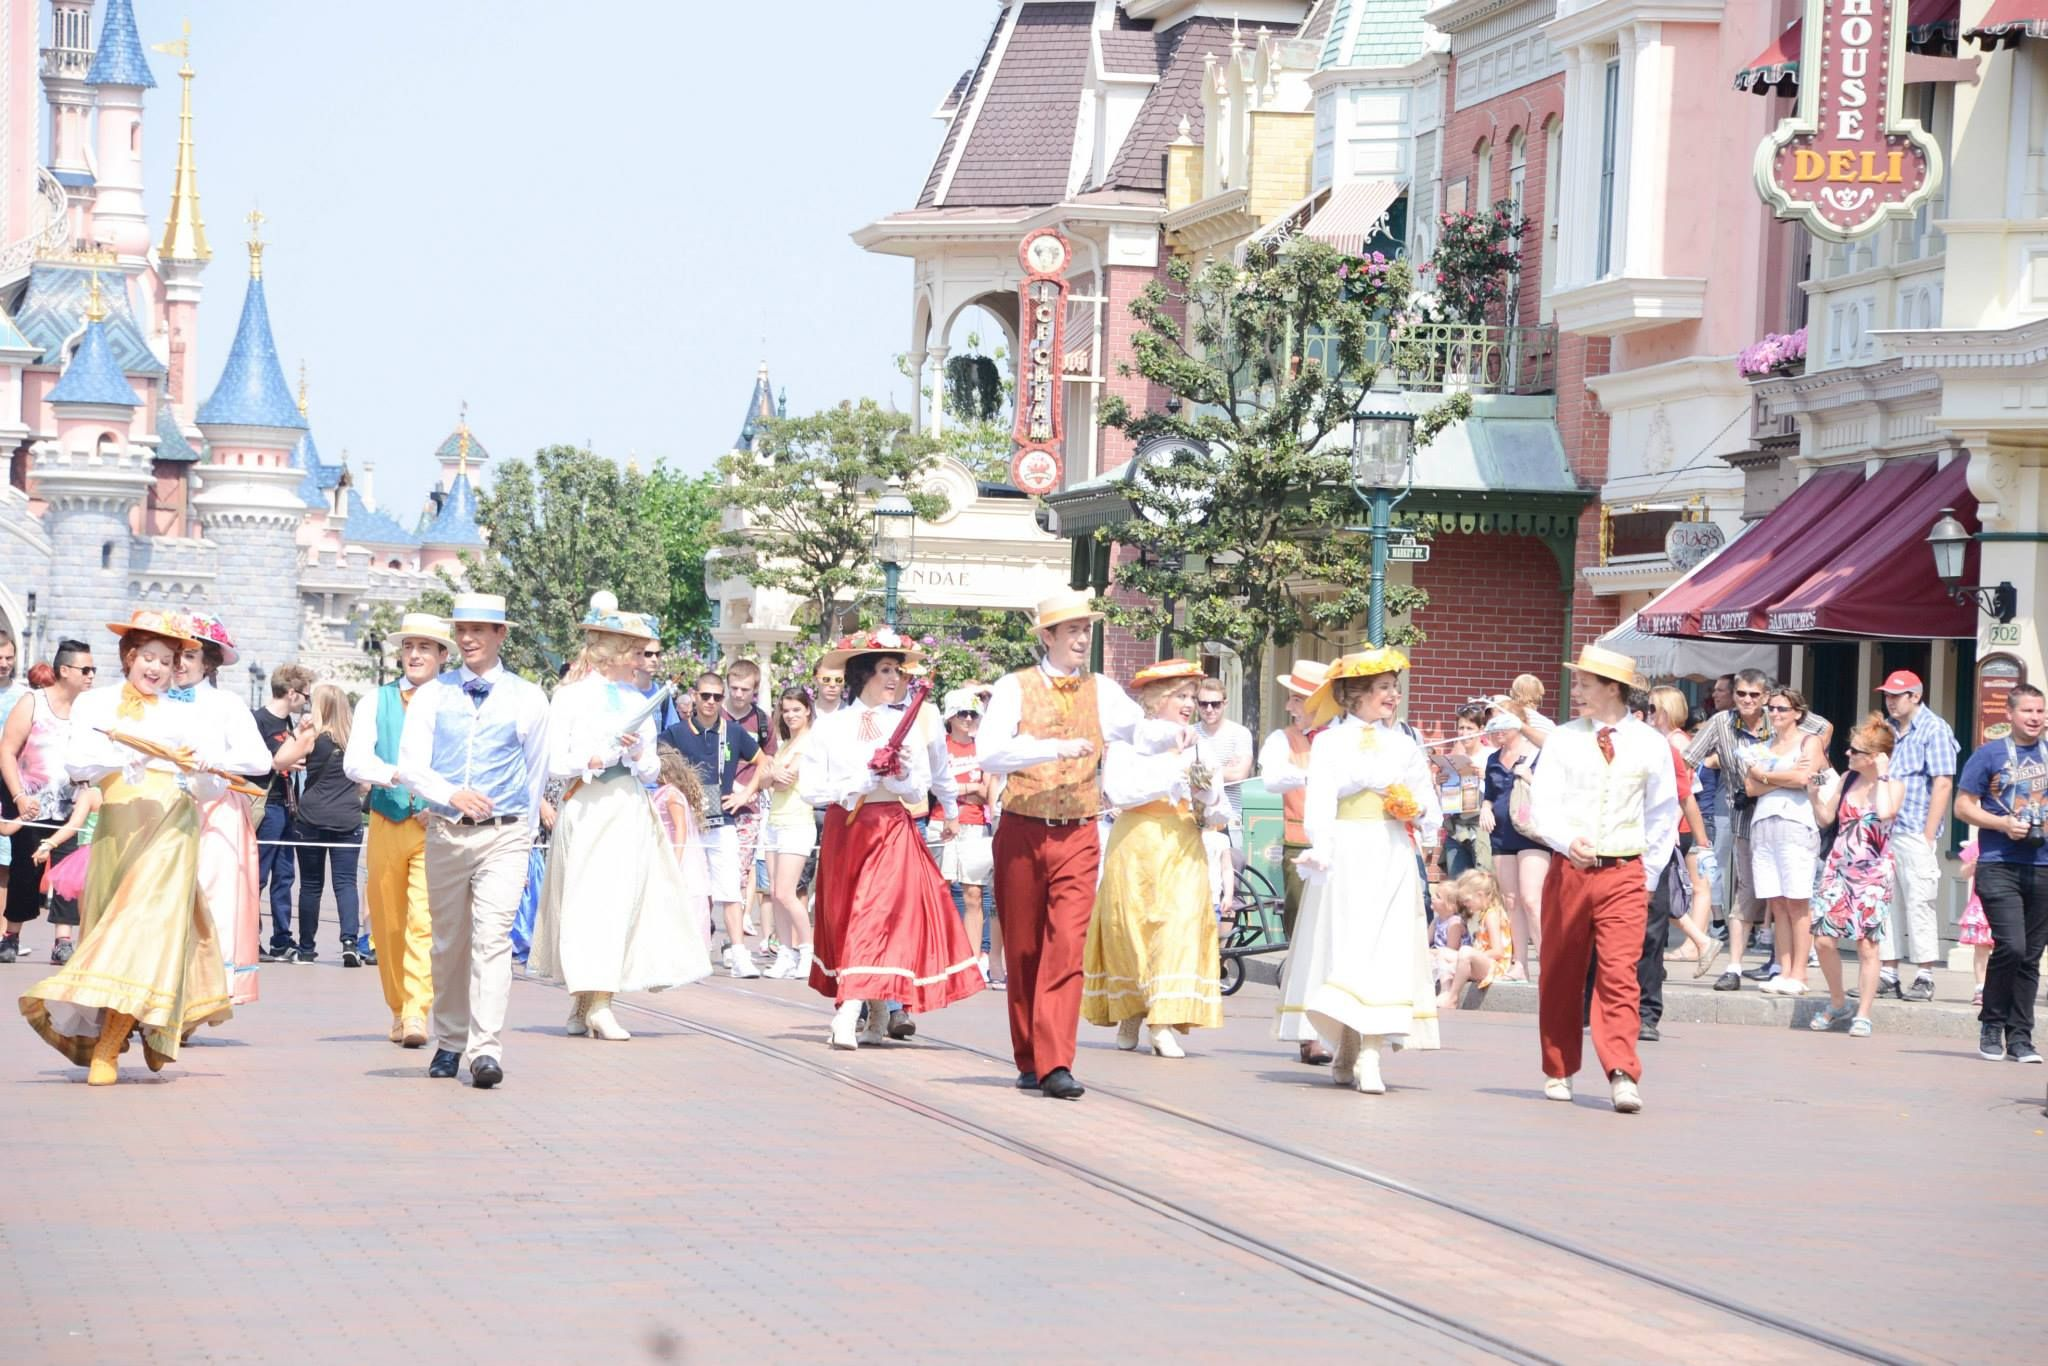 fête les beaux jours on main street USA at disneyland paris, photo by alizea girard